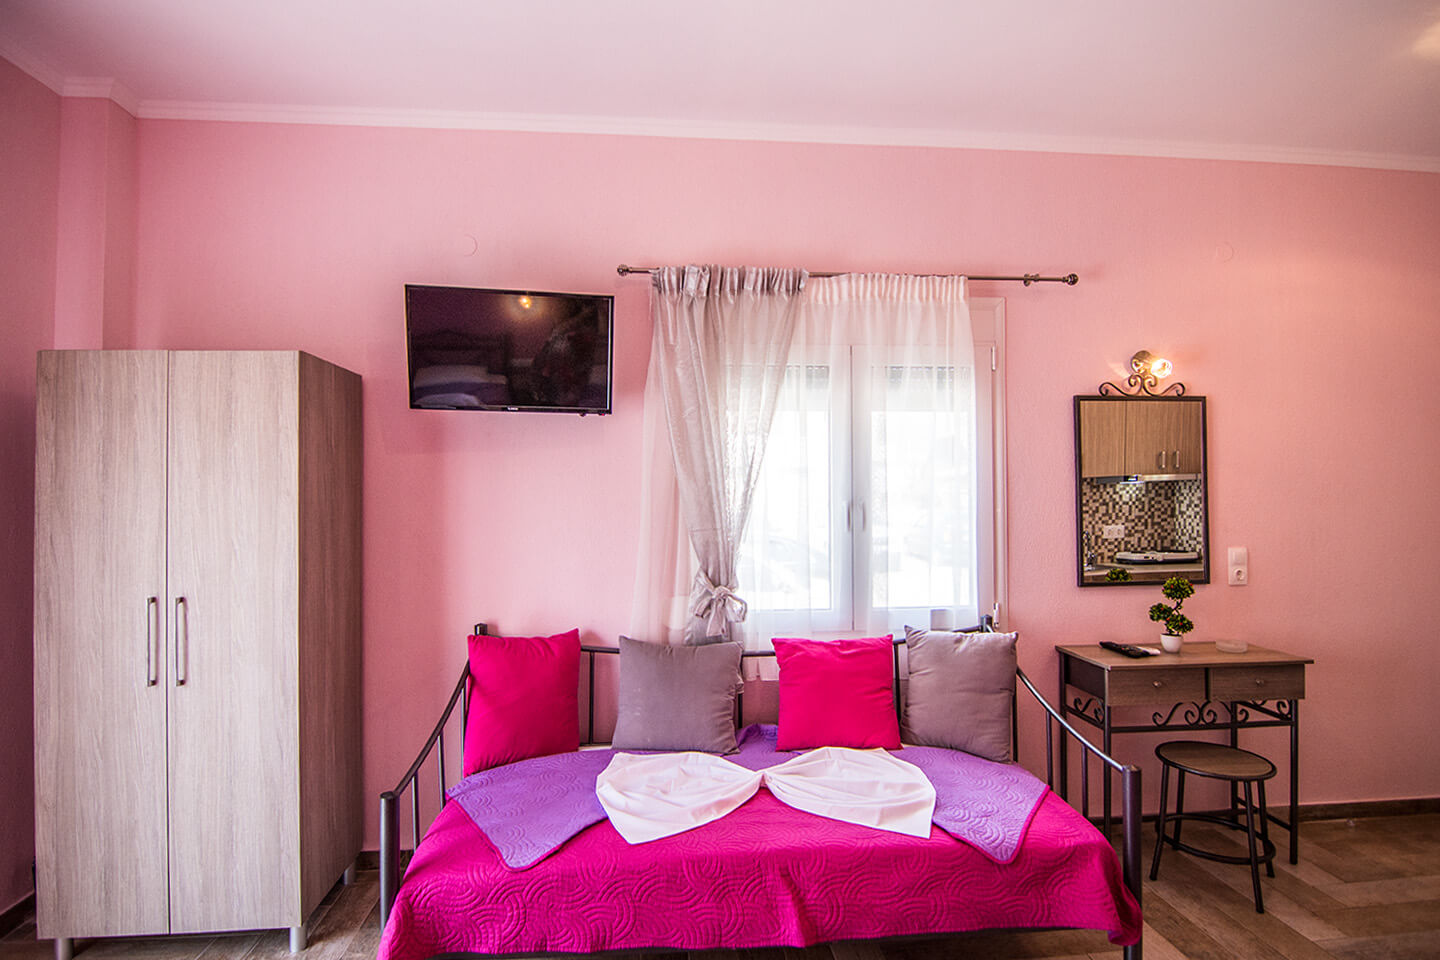 Christodoulos Eleftheria House Room 001 - Nea Vrasna - Rent Rooms - Apartments - Hotel